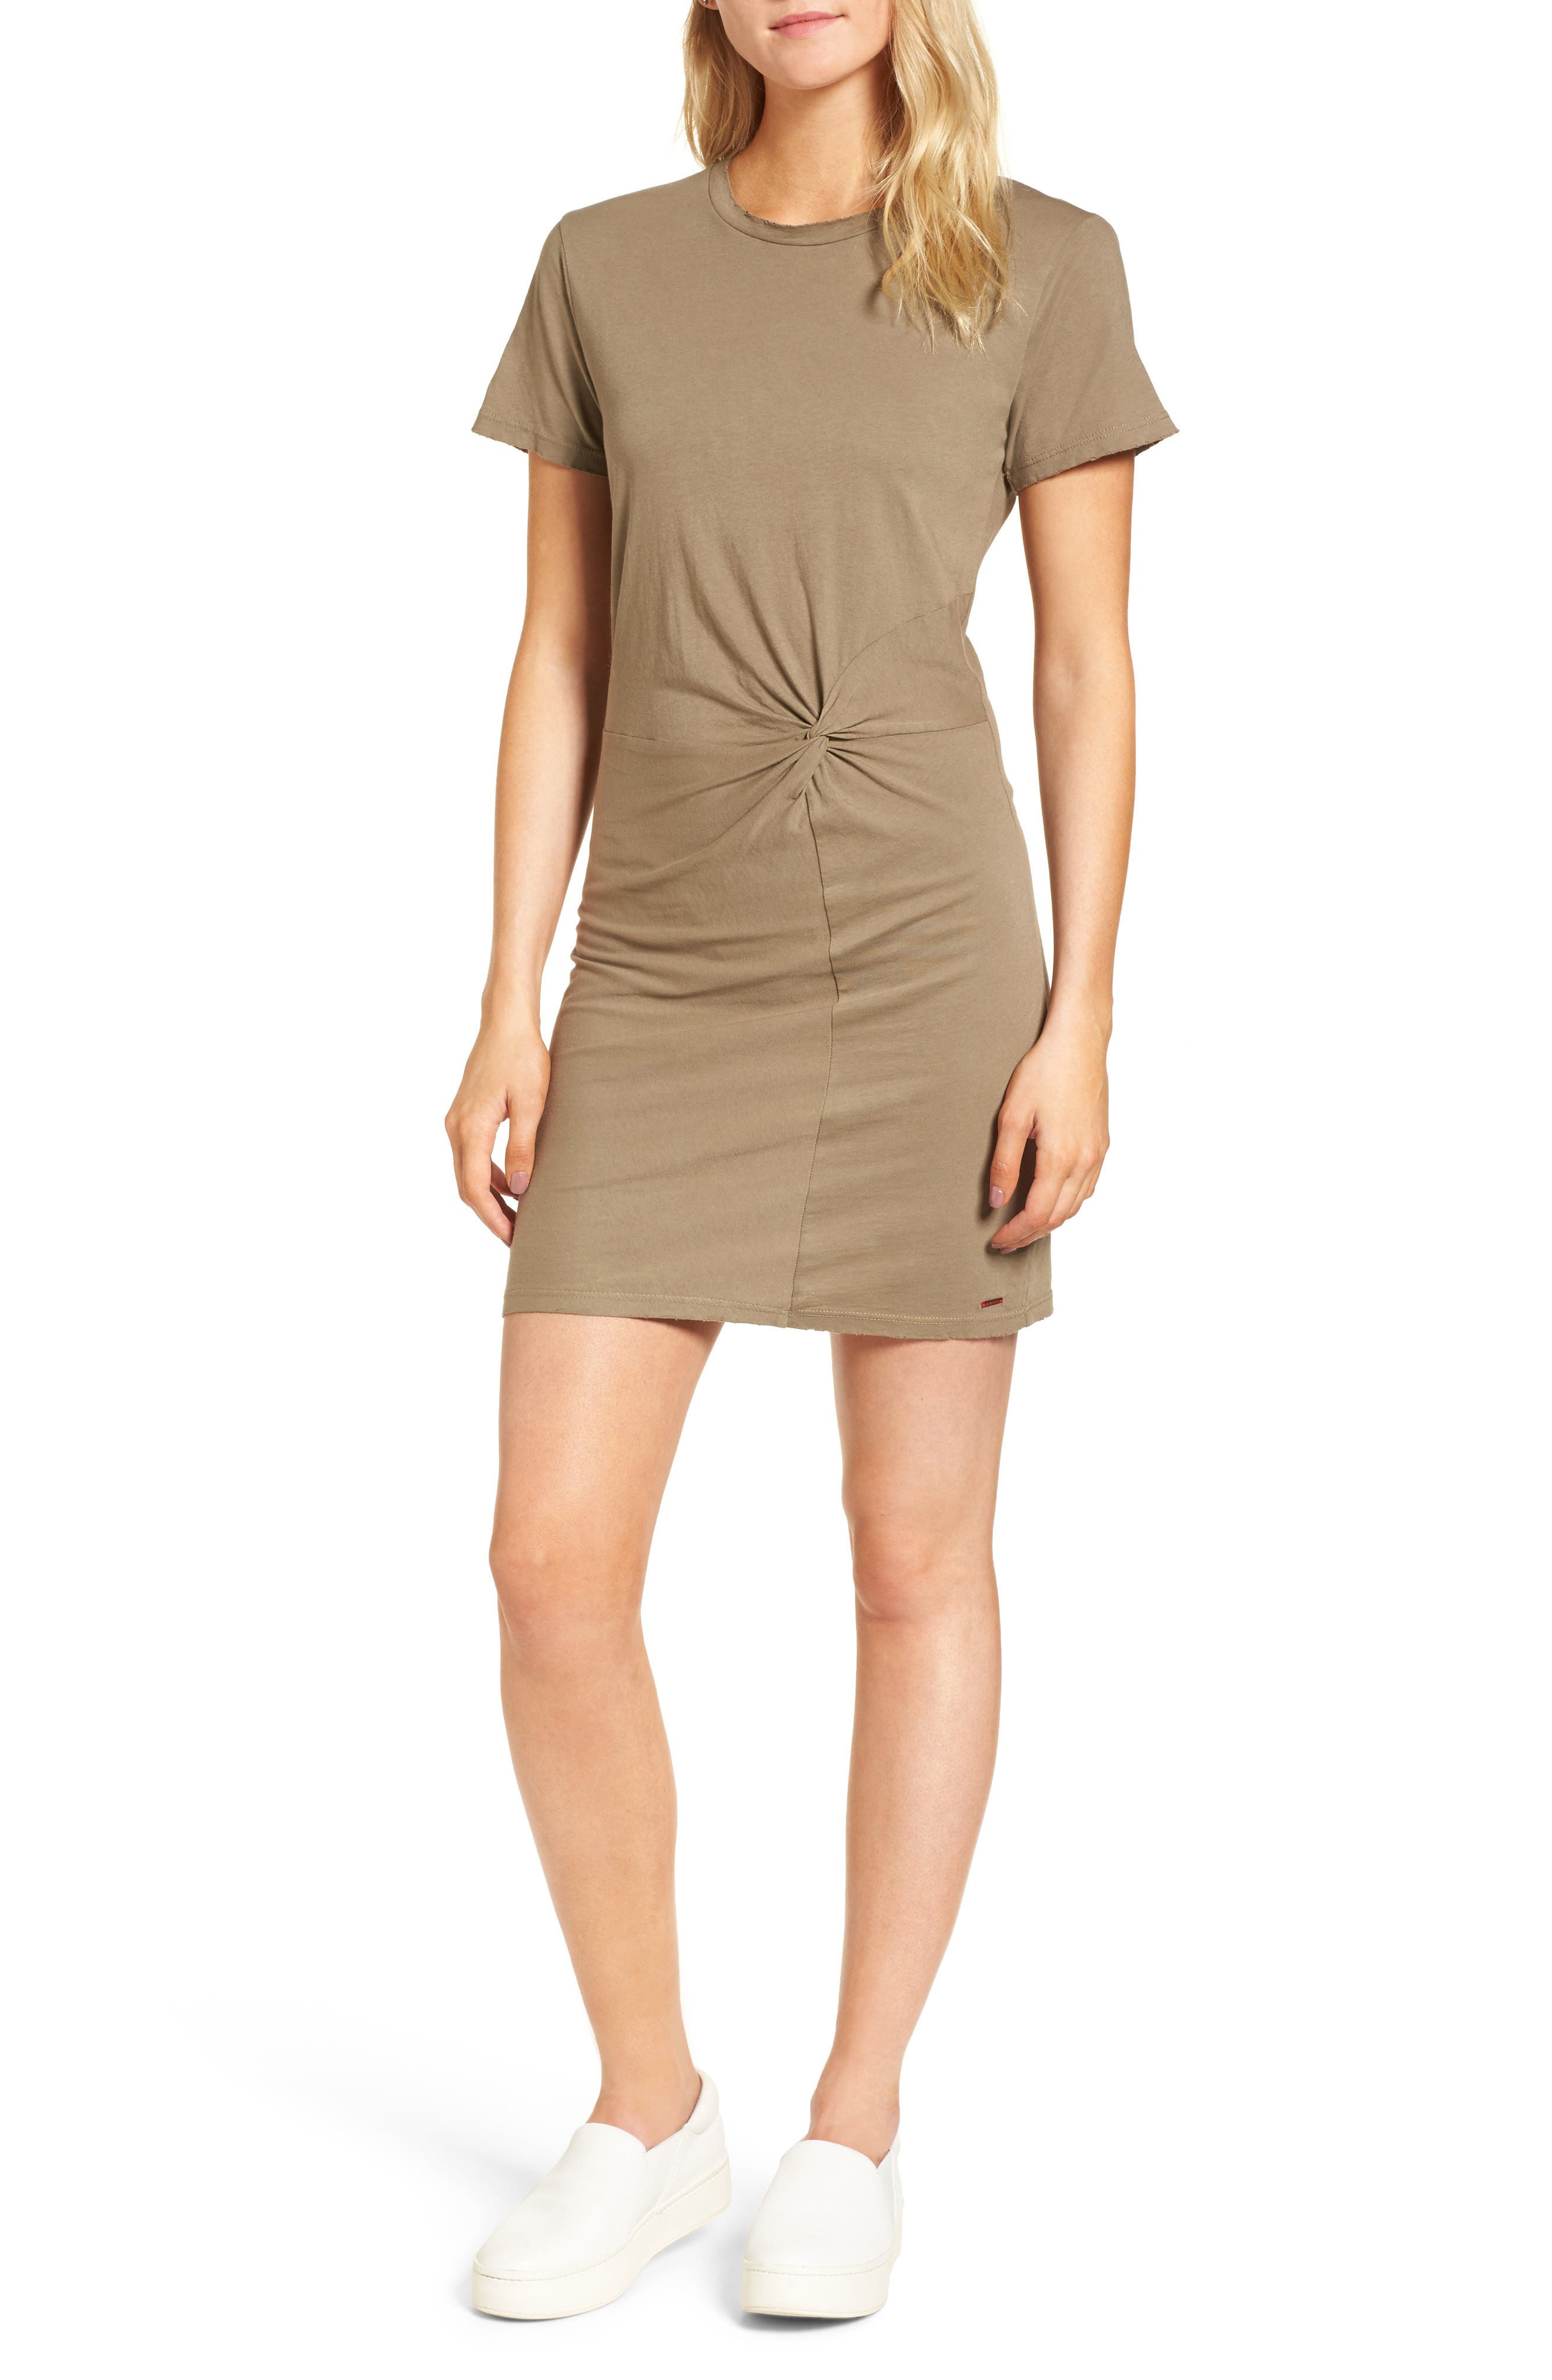 Jazz Knotted T-Shirt Dress,                             Main thumbnail 1, color,                             Army